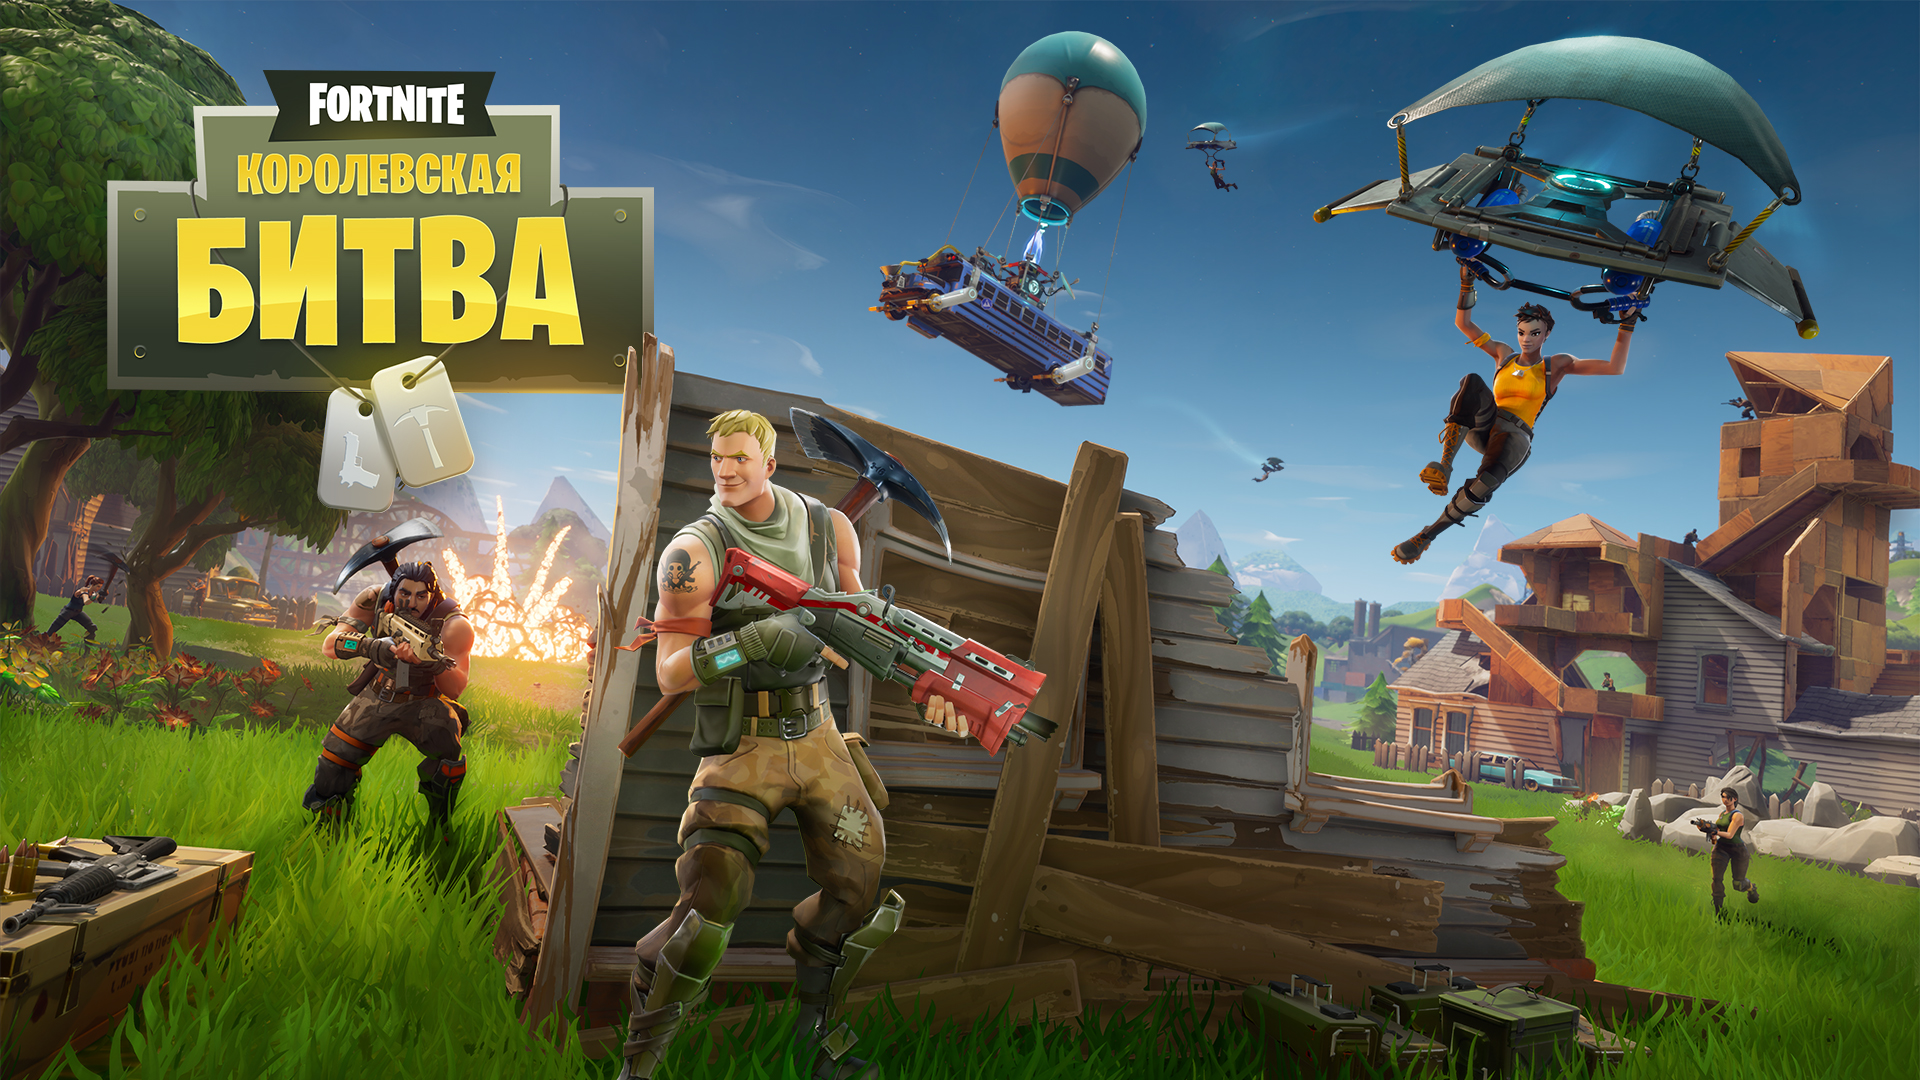 Fortnite%2Fblog%2Fpatch-v-1-6---fortnite-battle-royale%2FFortnite-BR_Key-Art_w-Logo_RUS-1920x1080-12d70bcc535a618867ae5fb8867a82474b86df09